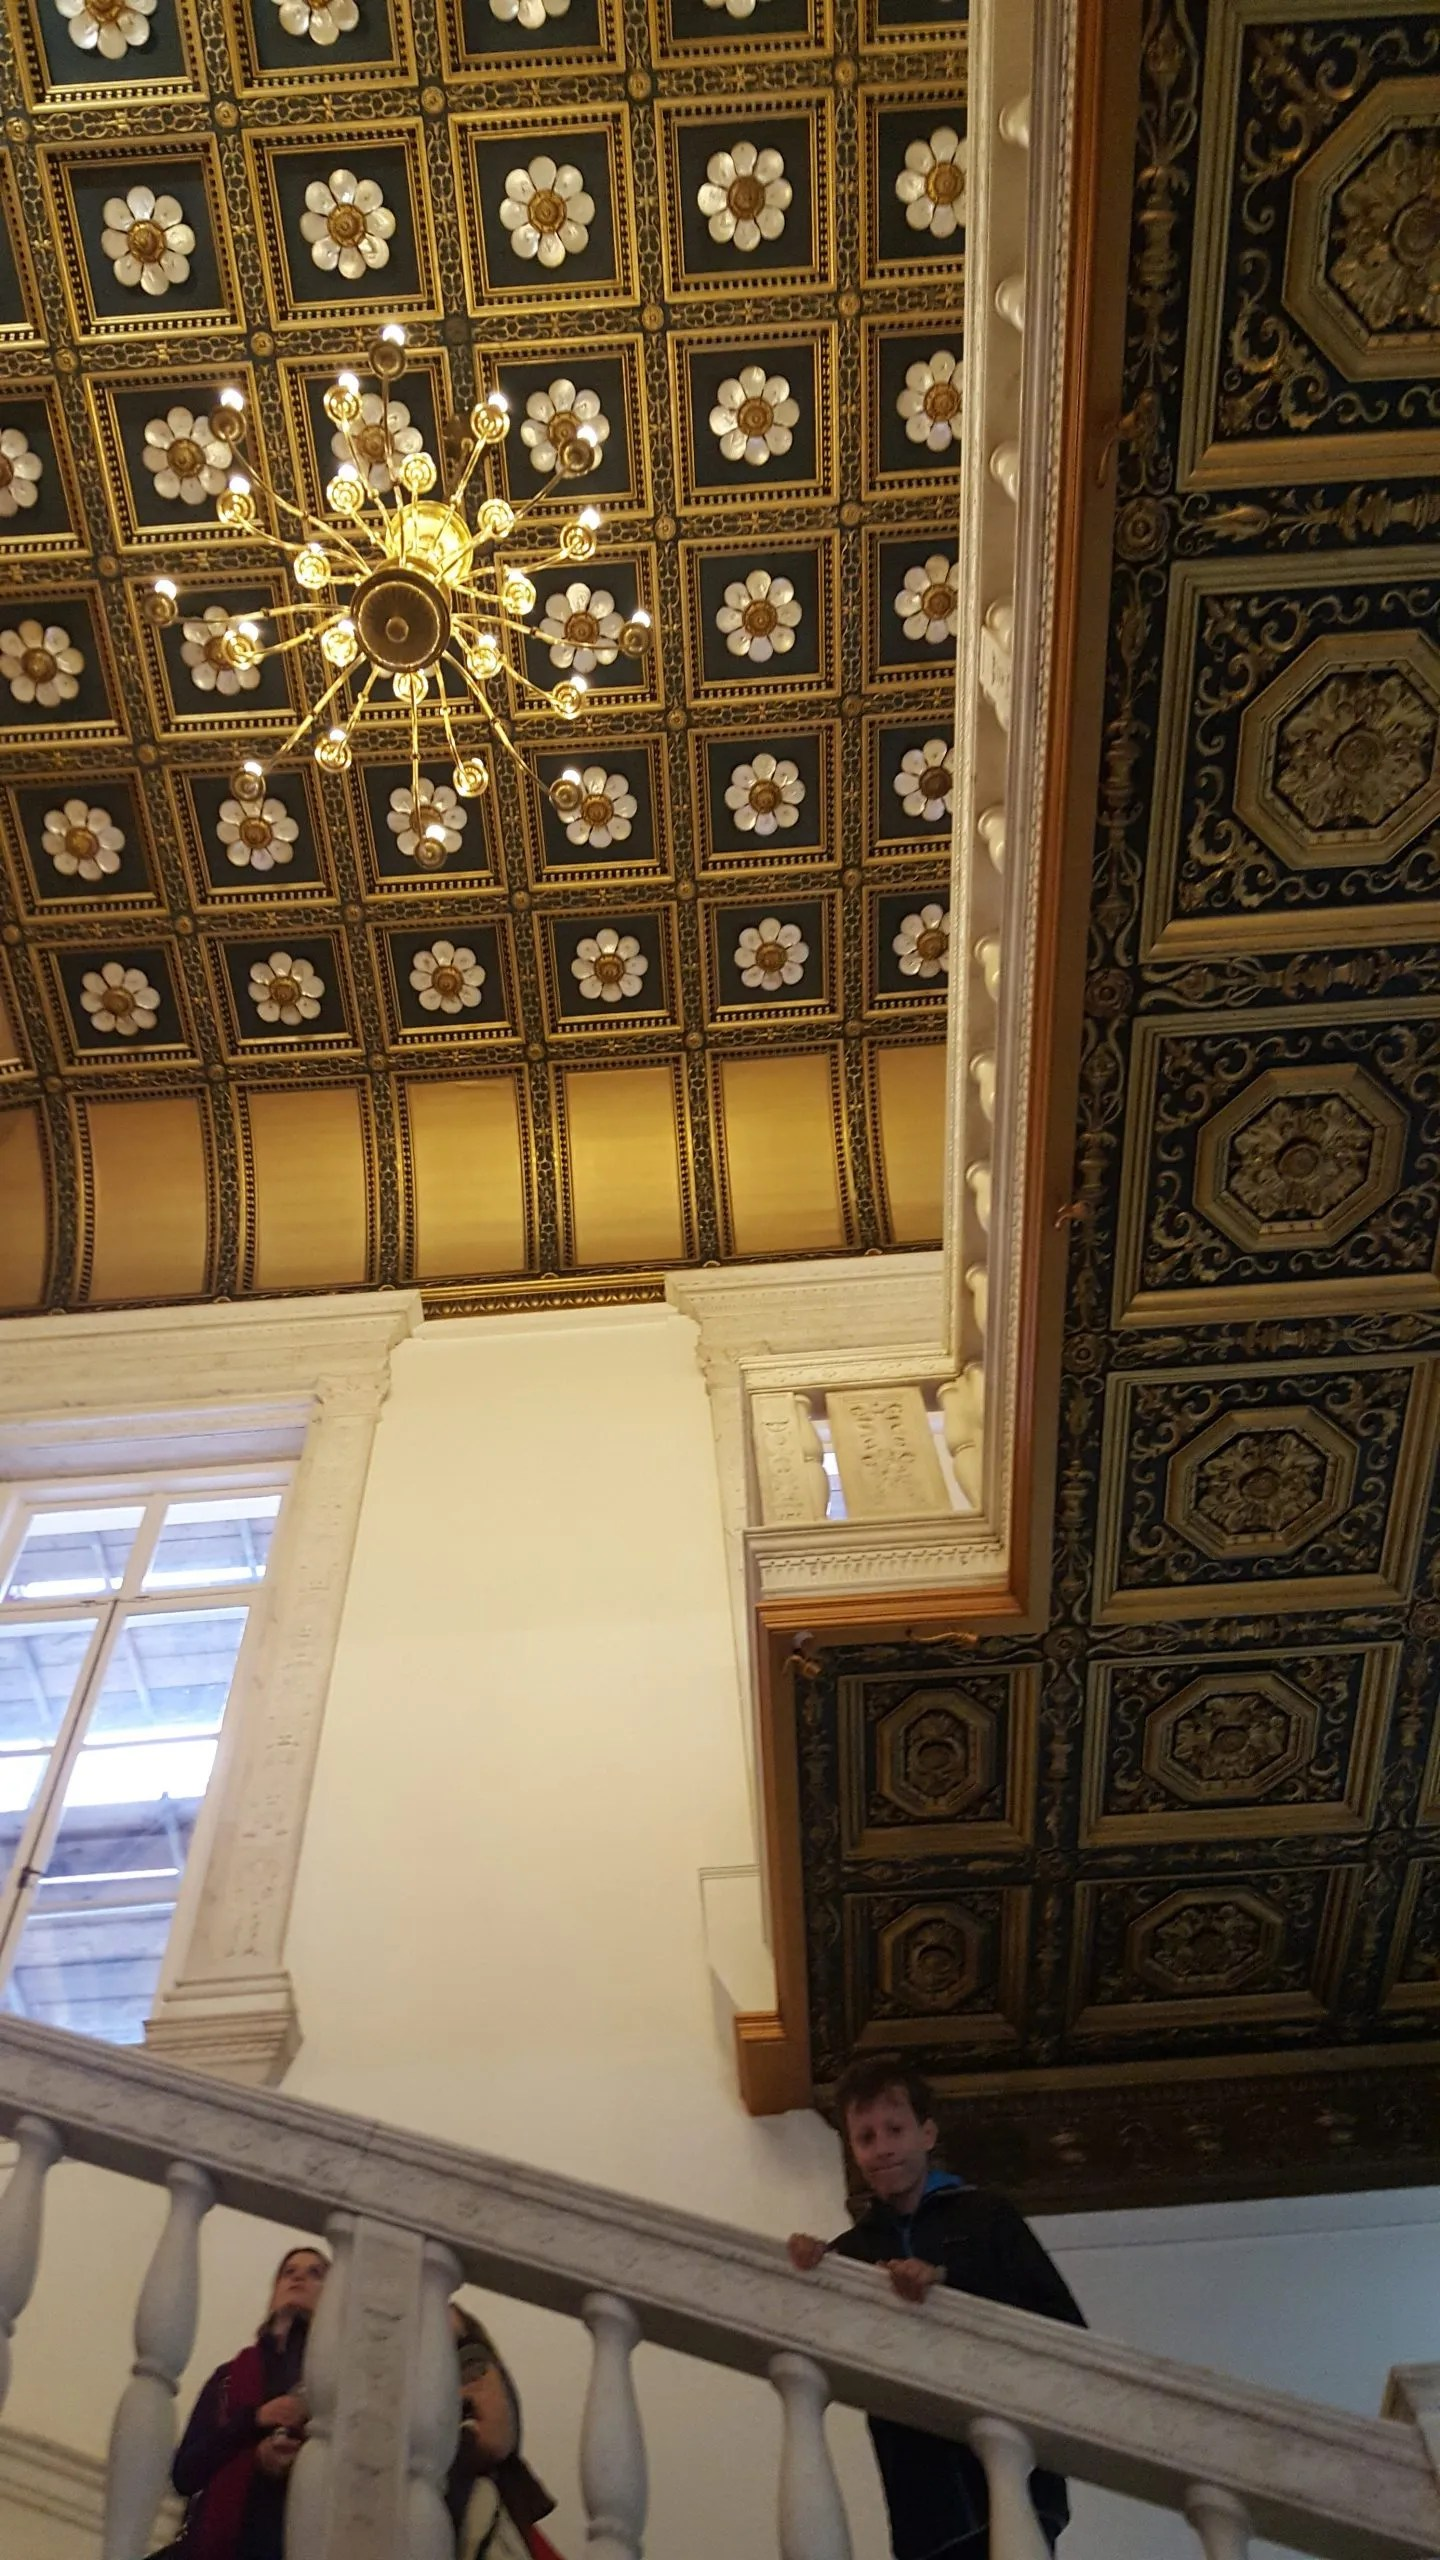 Royal Society Staircase